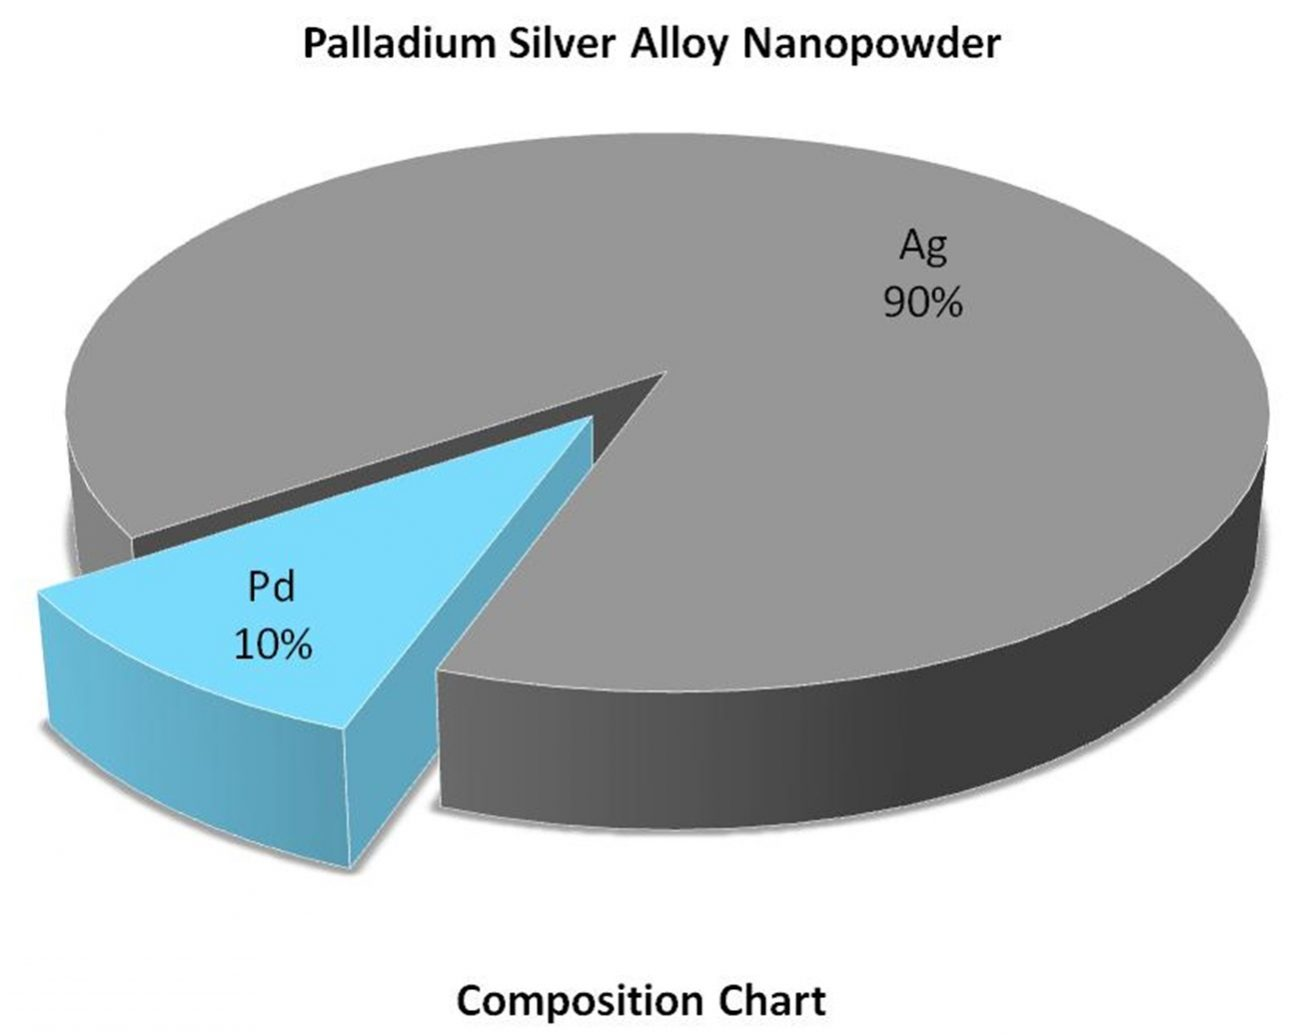 Composition Chart - Pd:Ag Alloy Nanoparticles